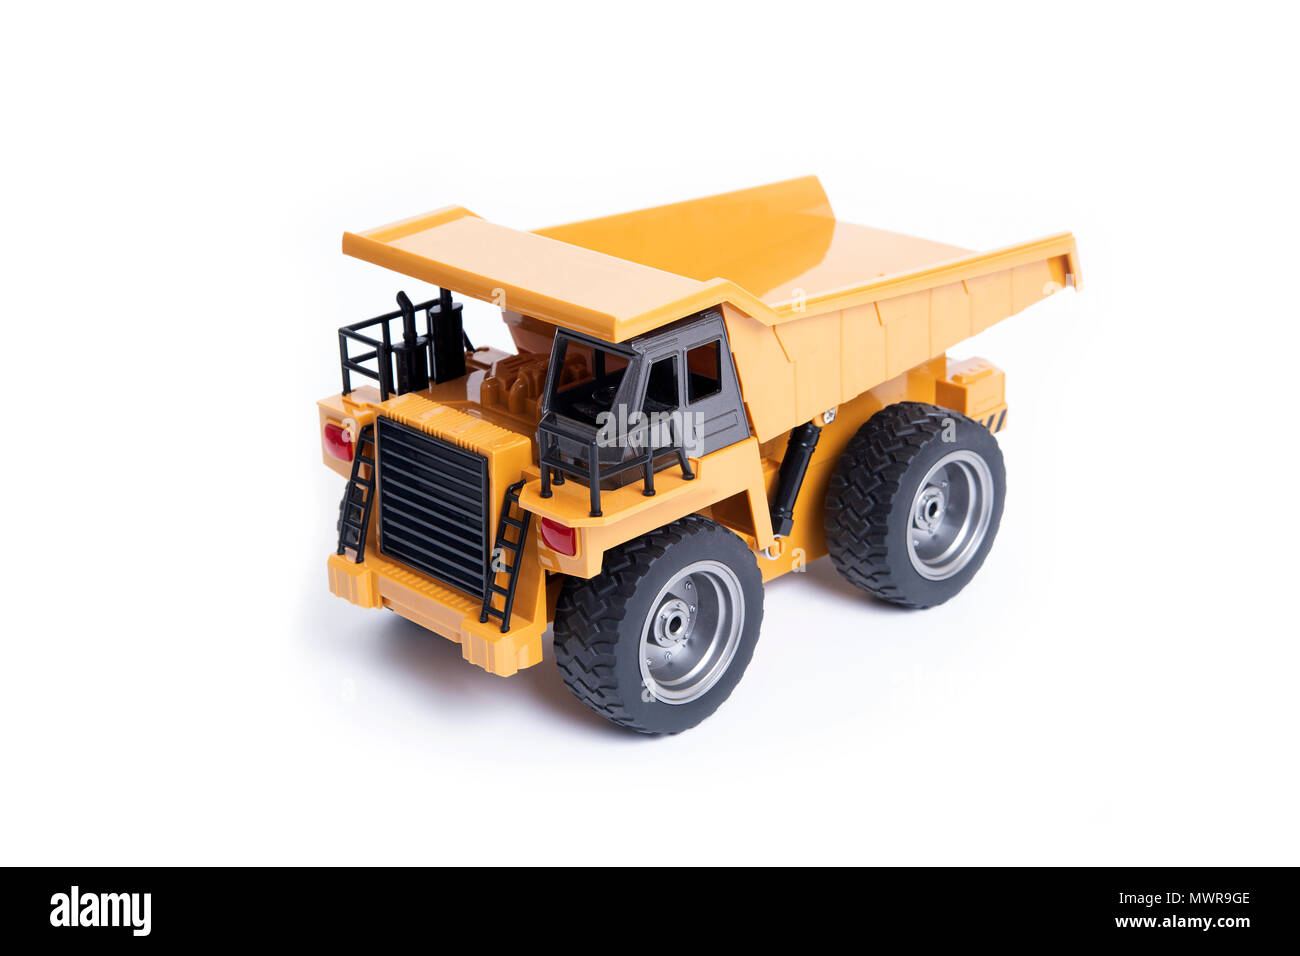 Toy model of heavy truck for mining on white background. - Stock Image